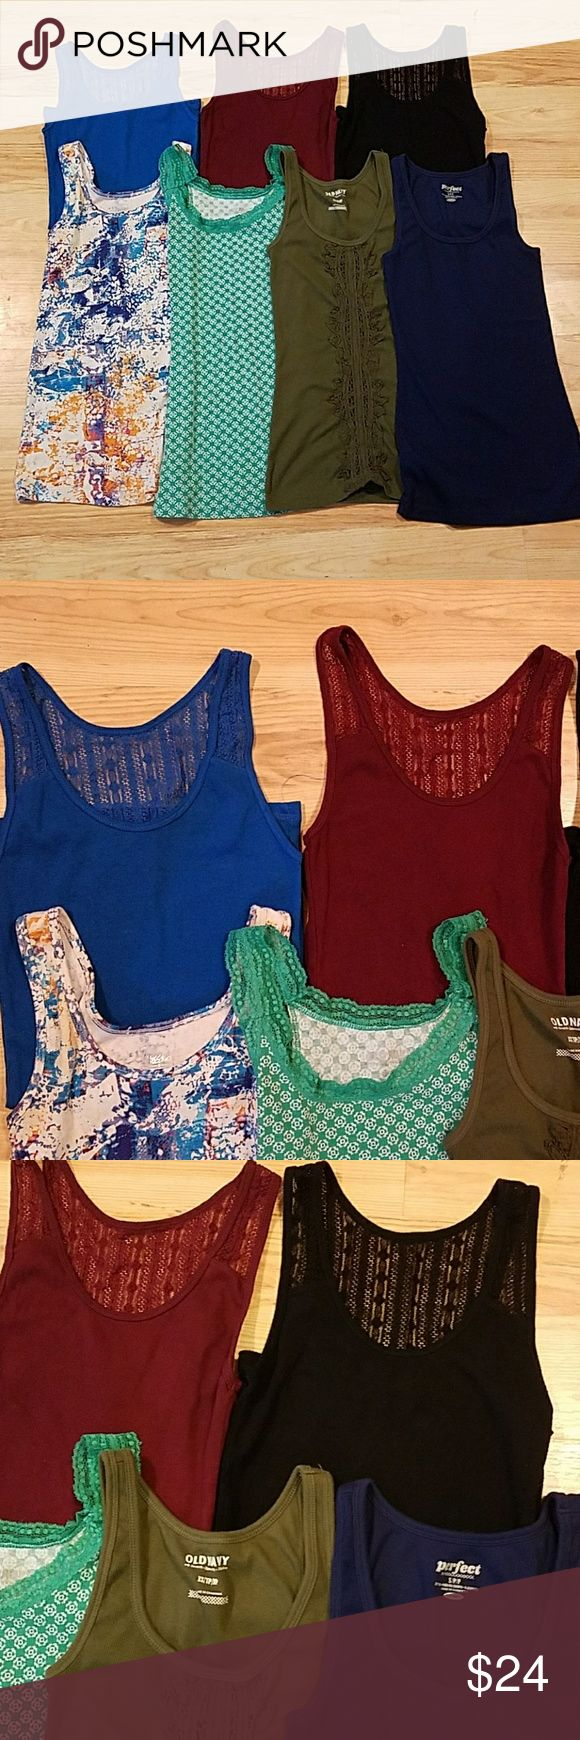 Lot of Tank Top Old Navy 7 women's tank tops all in great condition. The top 3 are Arizona Jean Brand all size Medium. Bottom row left to right, the first tank is Mossimo Brand size XS, the other 3 are all Old Navy the 2 green tanks are size XS and the last tank is size S. Old Nany, Arizona, Mossimo Tops Tank Tops